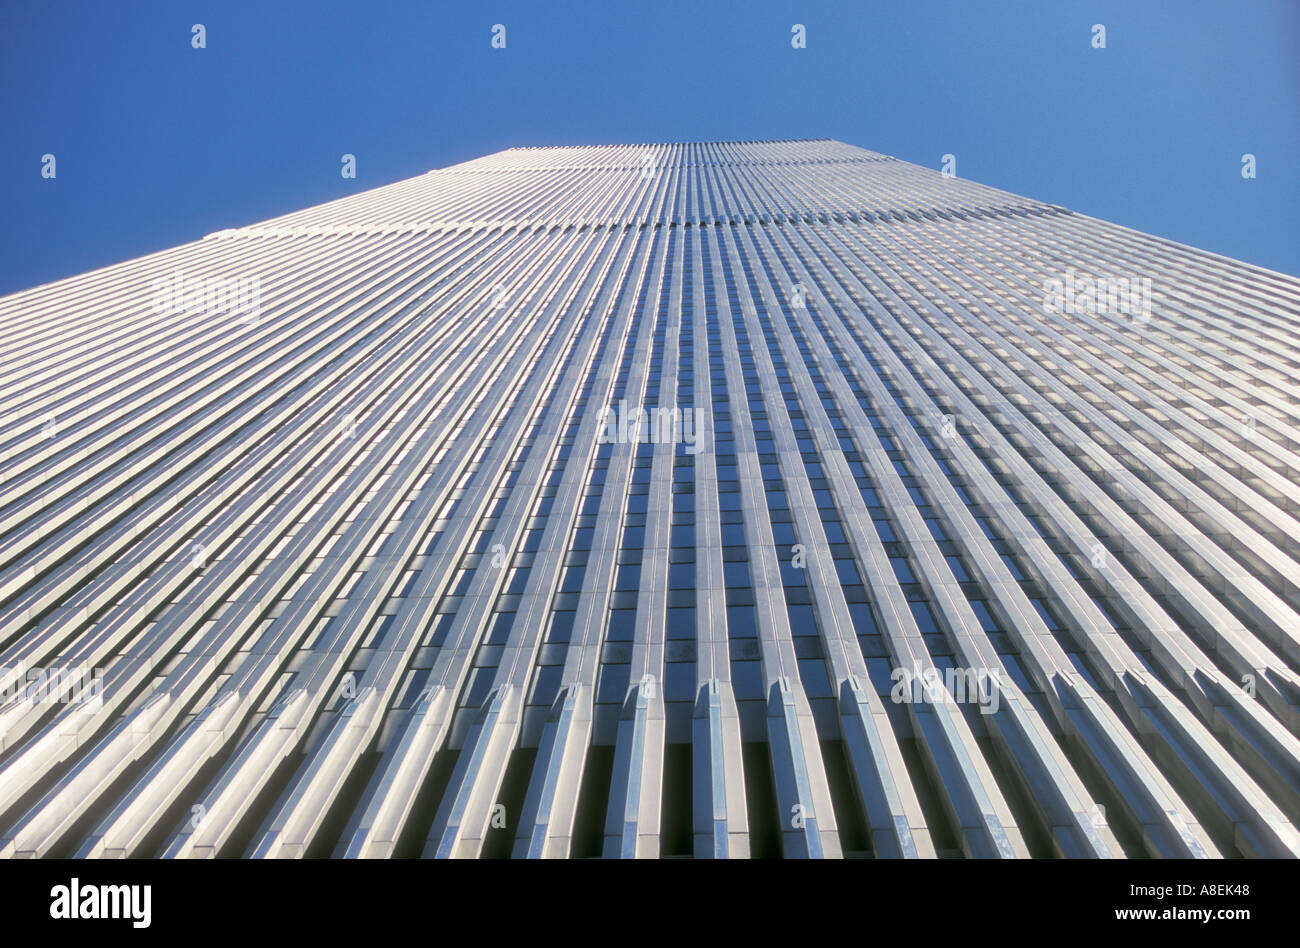 World Trade Center Twin Towers NYC USA - Stock Image